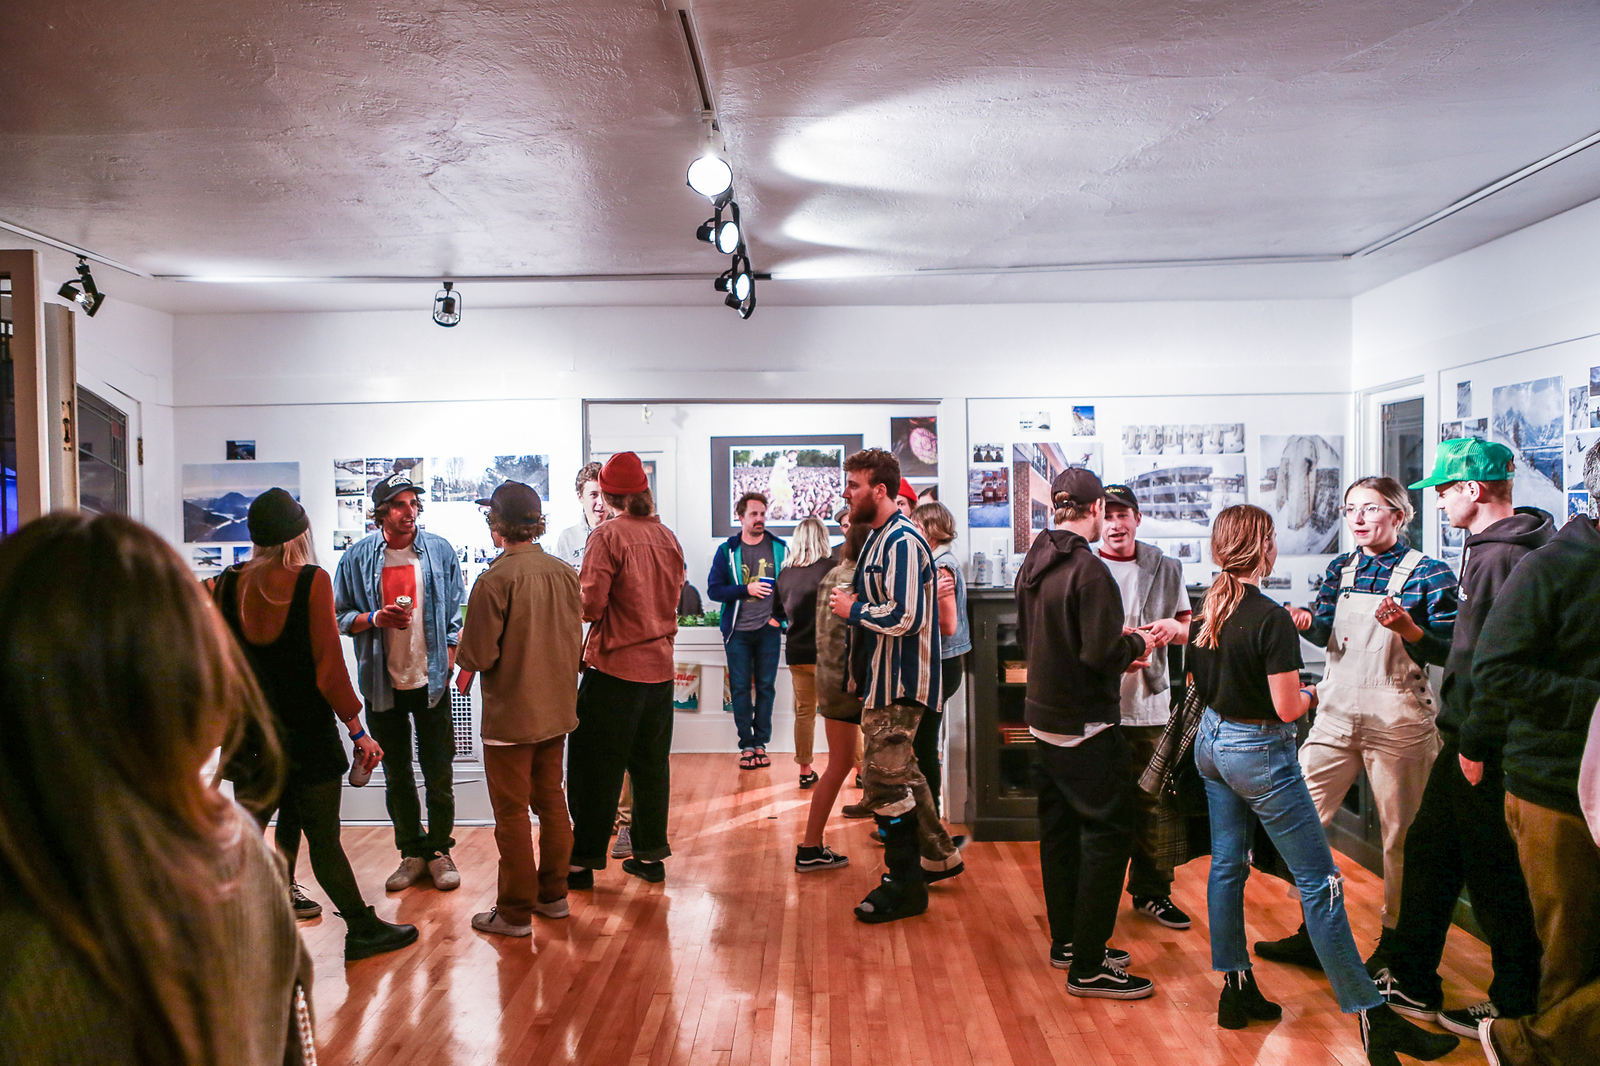 2017.10.9-Arbor Snowboard Premiere@Clubhouse_PhotoCollectiveStudios.com-0116-X3.jpg